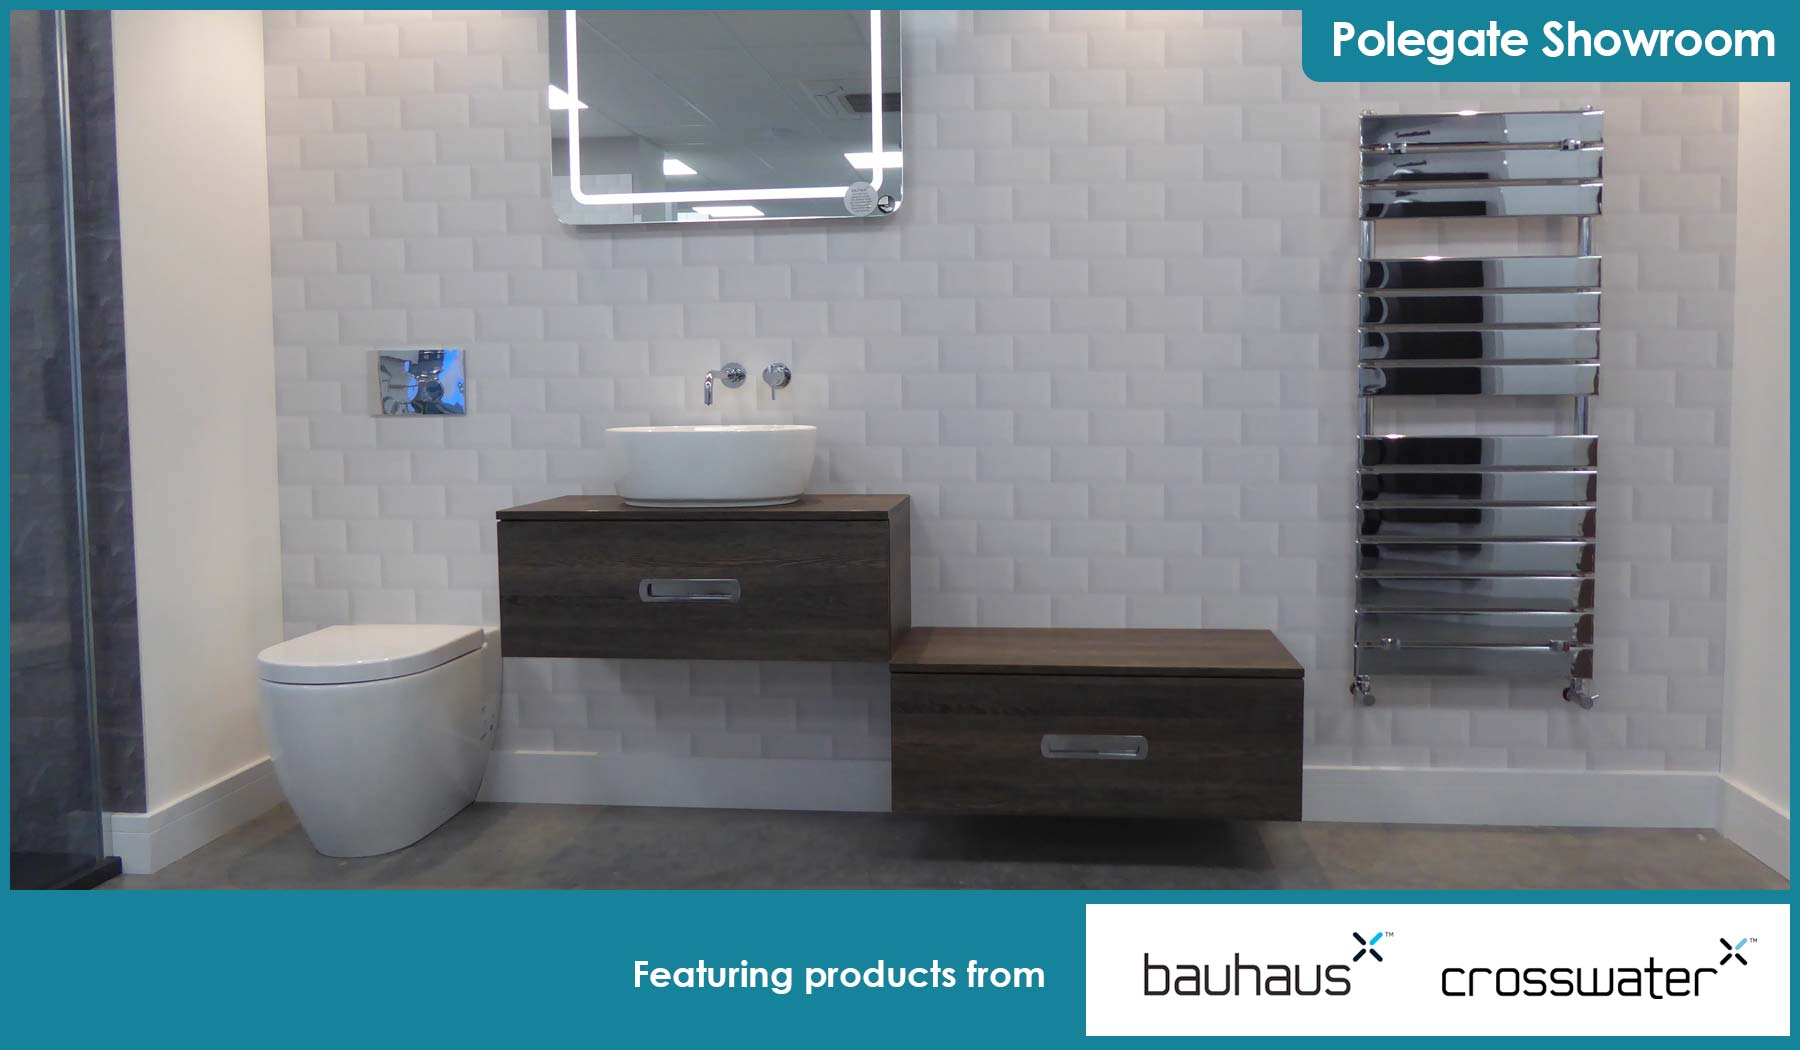 Bathroom Showrooms East Sussex showrooms - sussex plumbing supplies